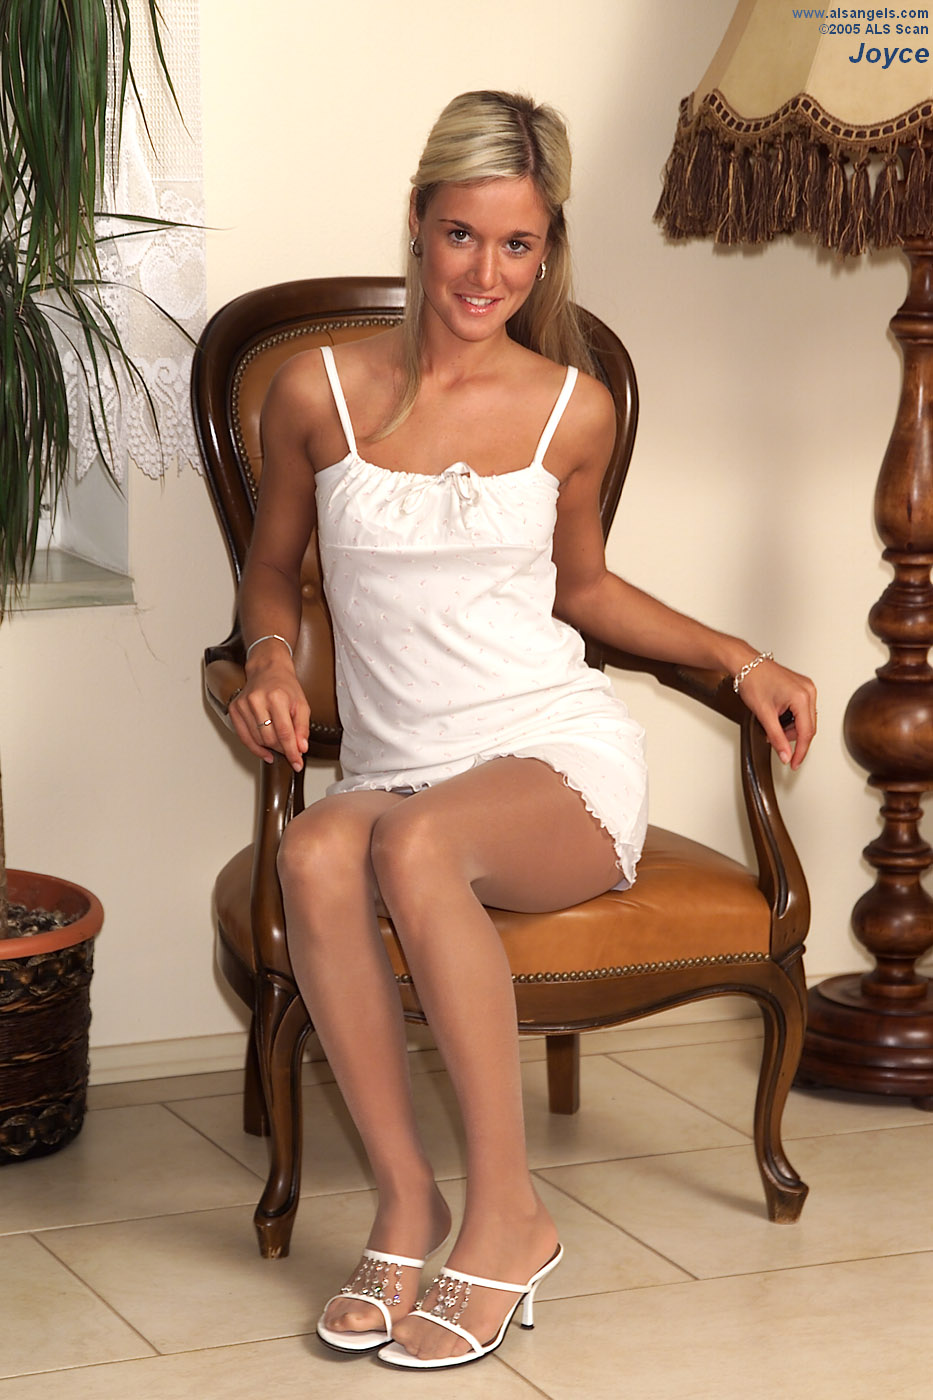 Joyce - Joyce Rips and Strips Pantyhose to Spread Her Pink